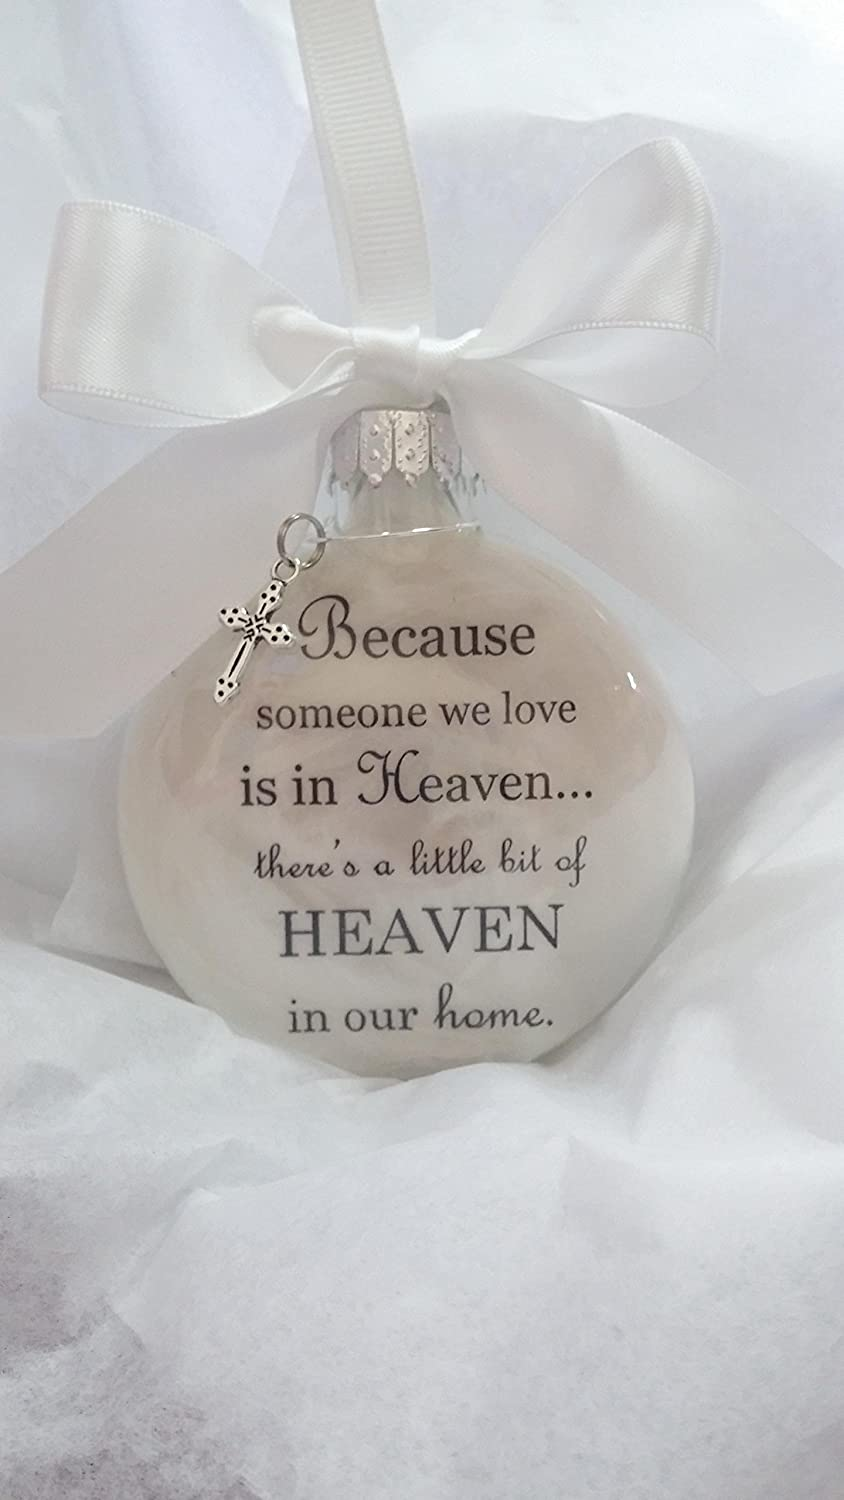 Amazon.com: Memorial Christmas Ornament - Because Someone We Love is ...